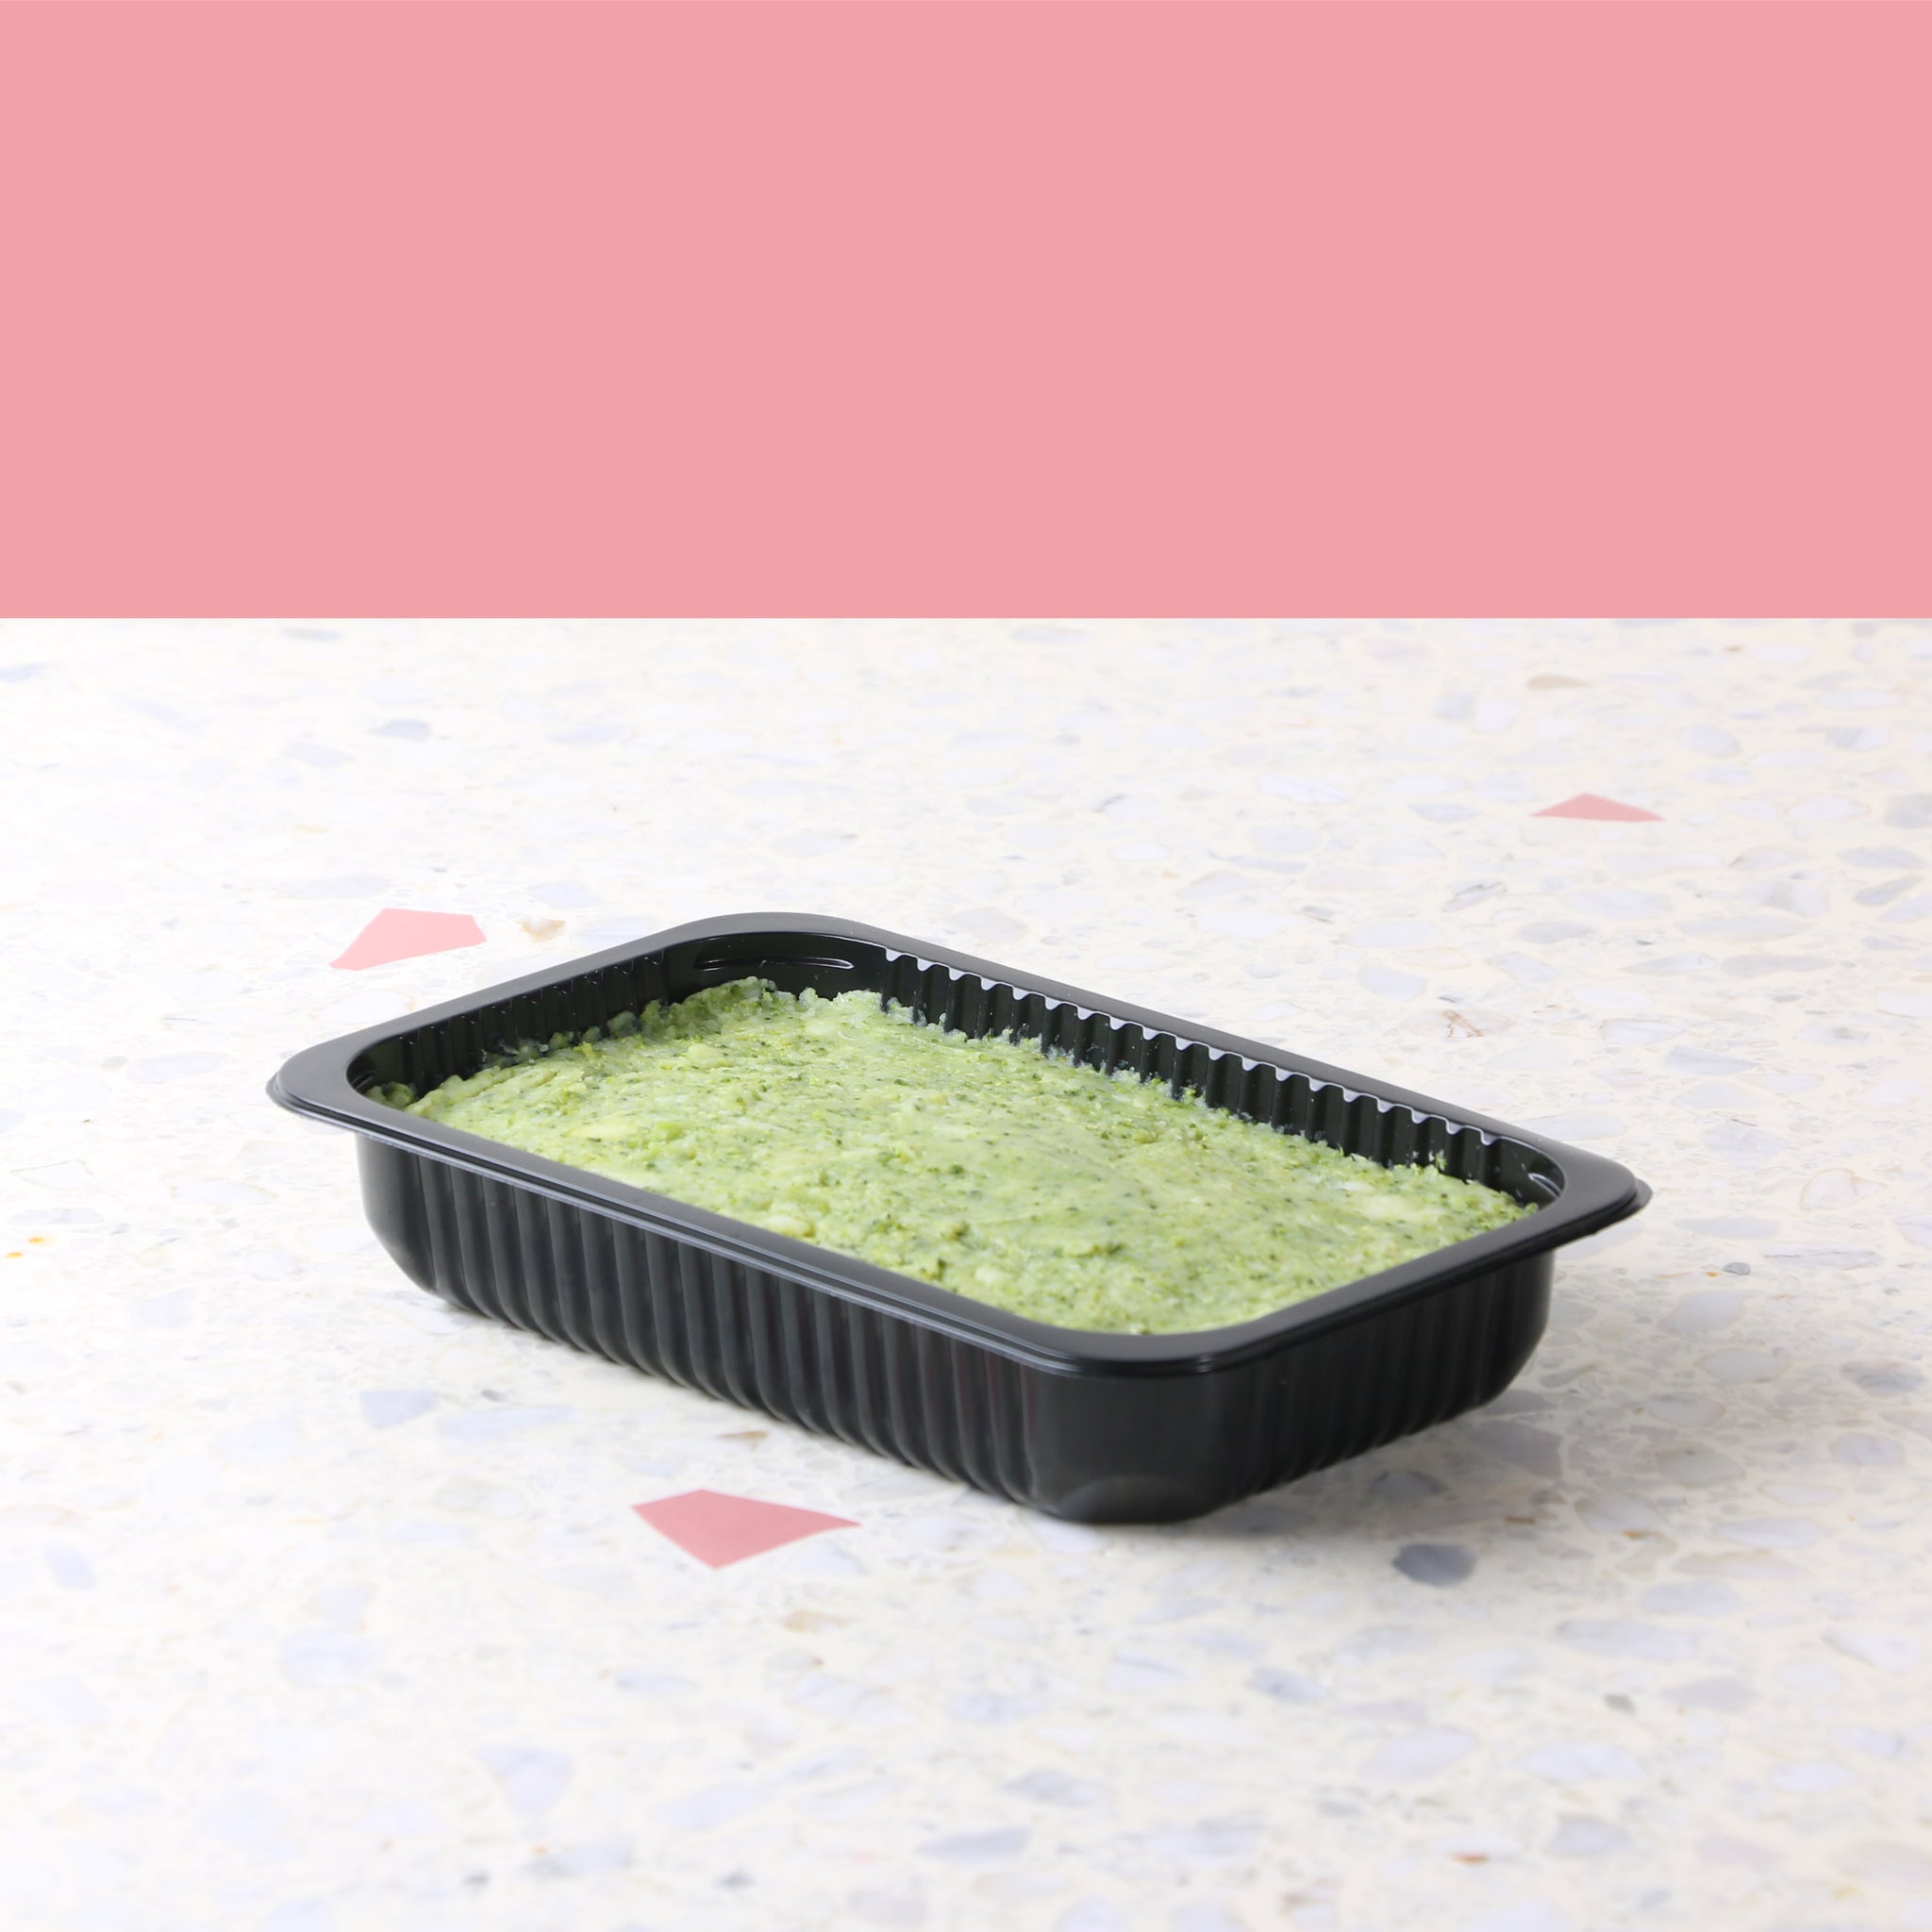 Broccolipuree